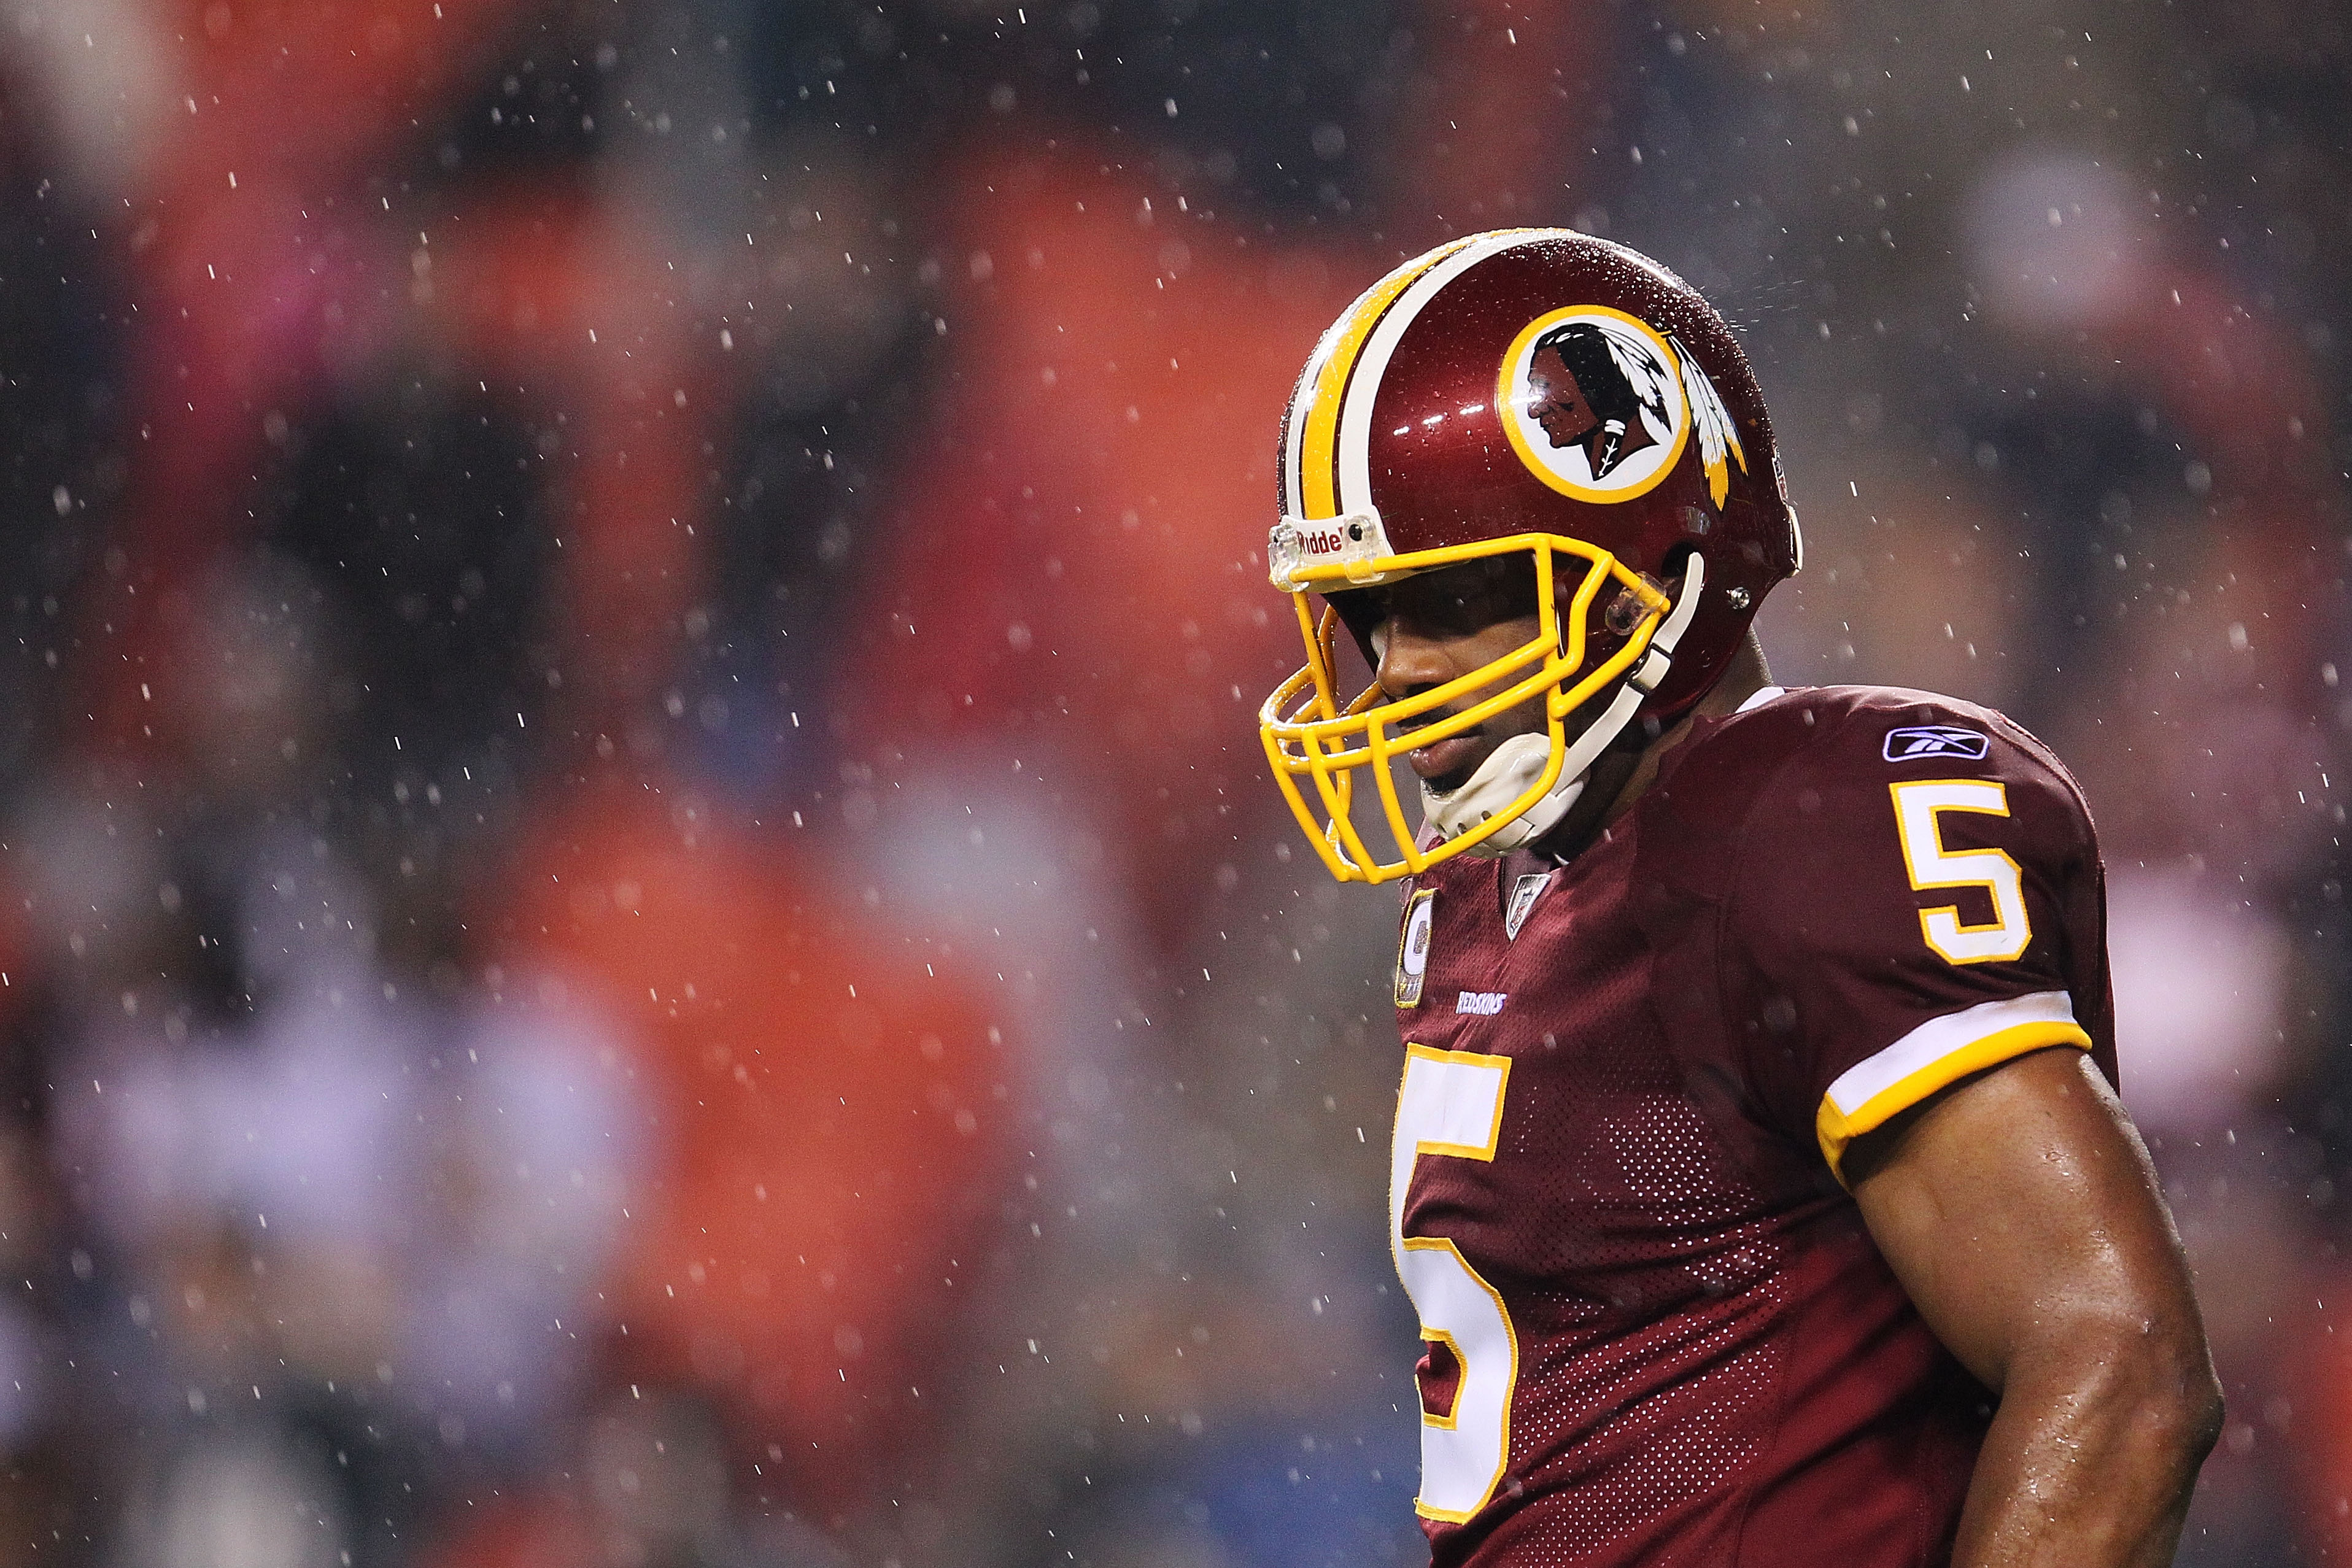 LANDOVER, MD - NOVEMBER 15:  Donovan McNabb #5 of the Washington Redskins waits for play to resume in the fourth quarter against the Philadelphia Eagles on November 15, 2010 at FedExField in Landover, Maryland.  (Photo by Chris McGrath/Getty Images)